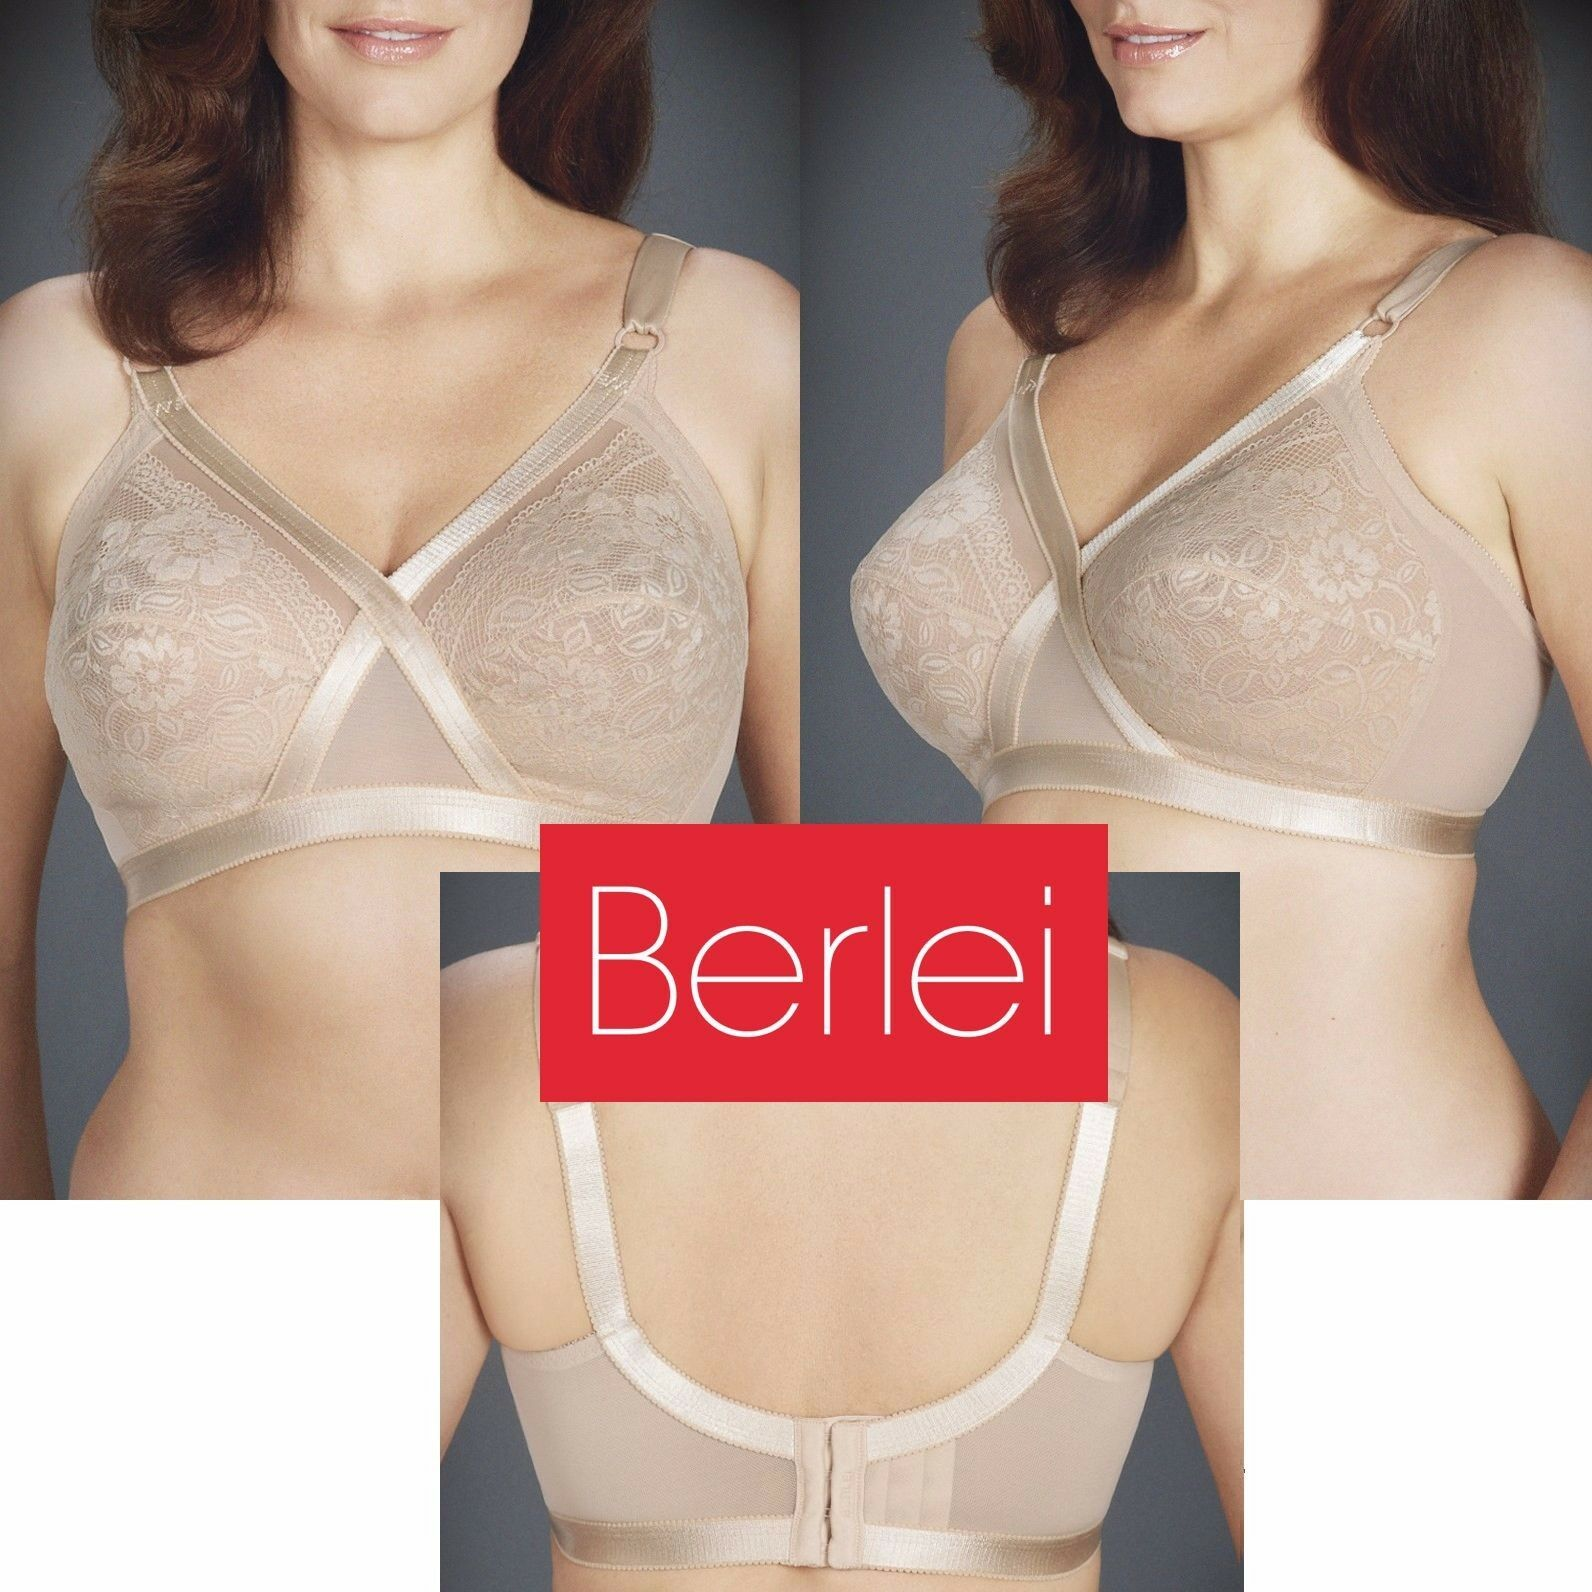 ed209f4451 Details about BERLEI Classic Lace WIRE FREE Curves Nude Praline Plus Bra 12  14 18 22 24 D DD